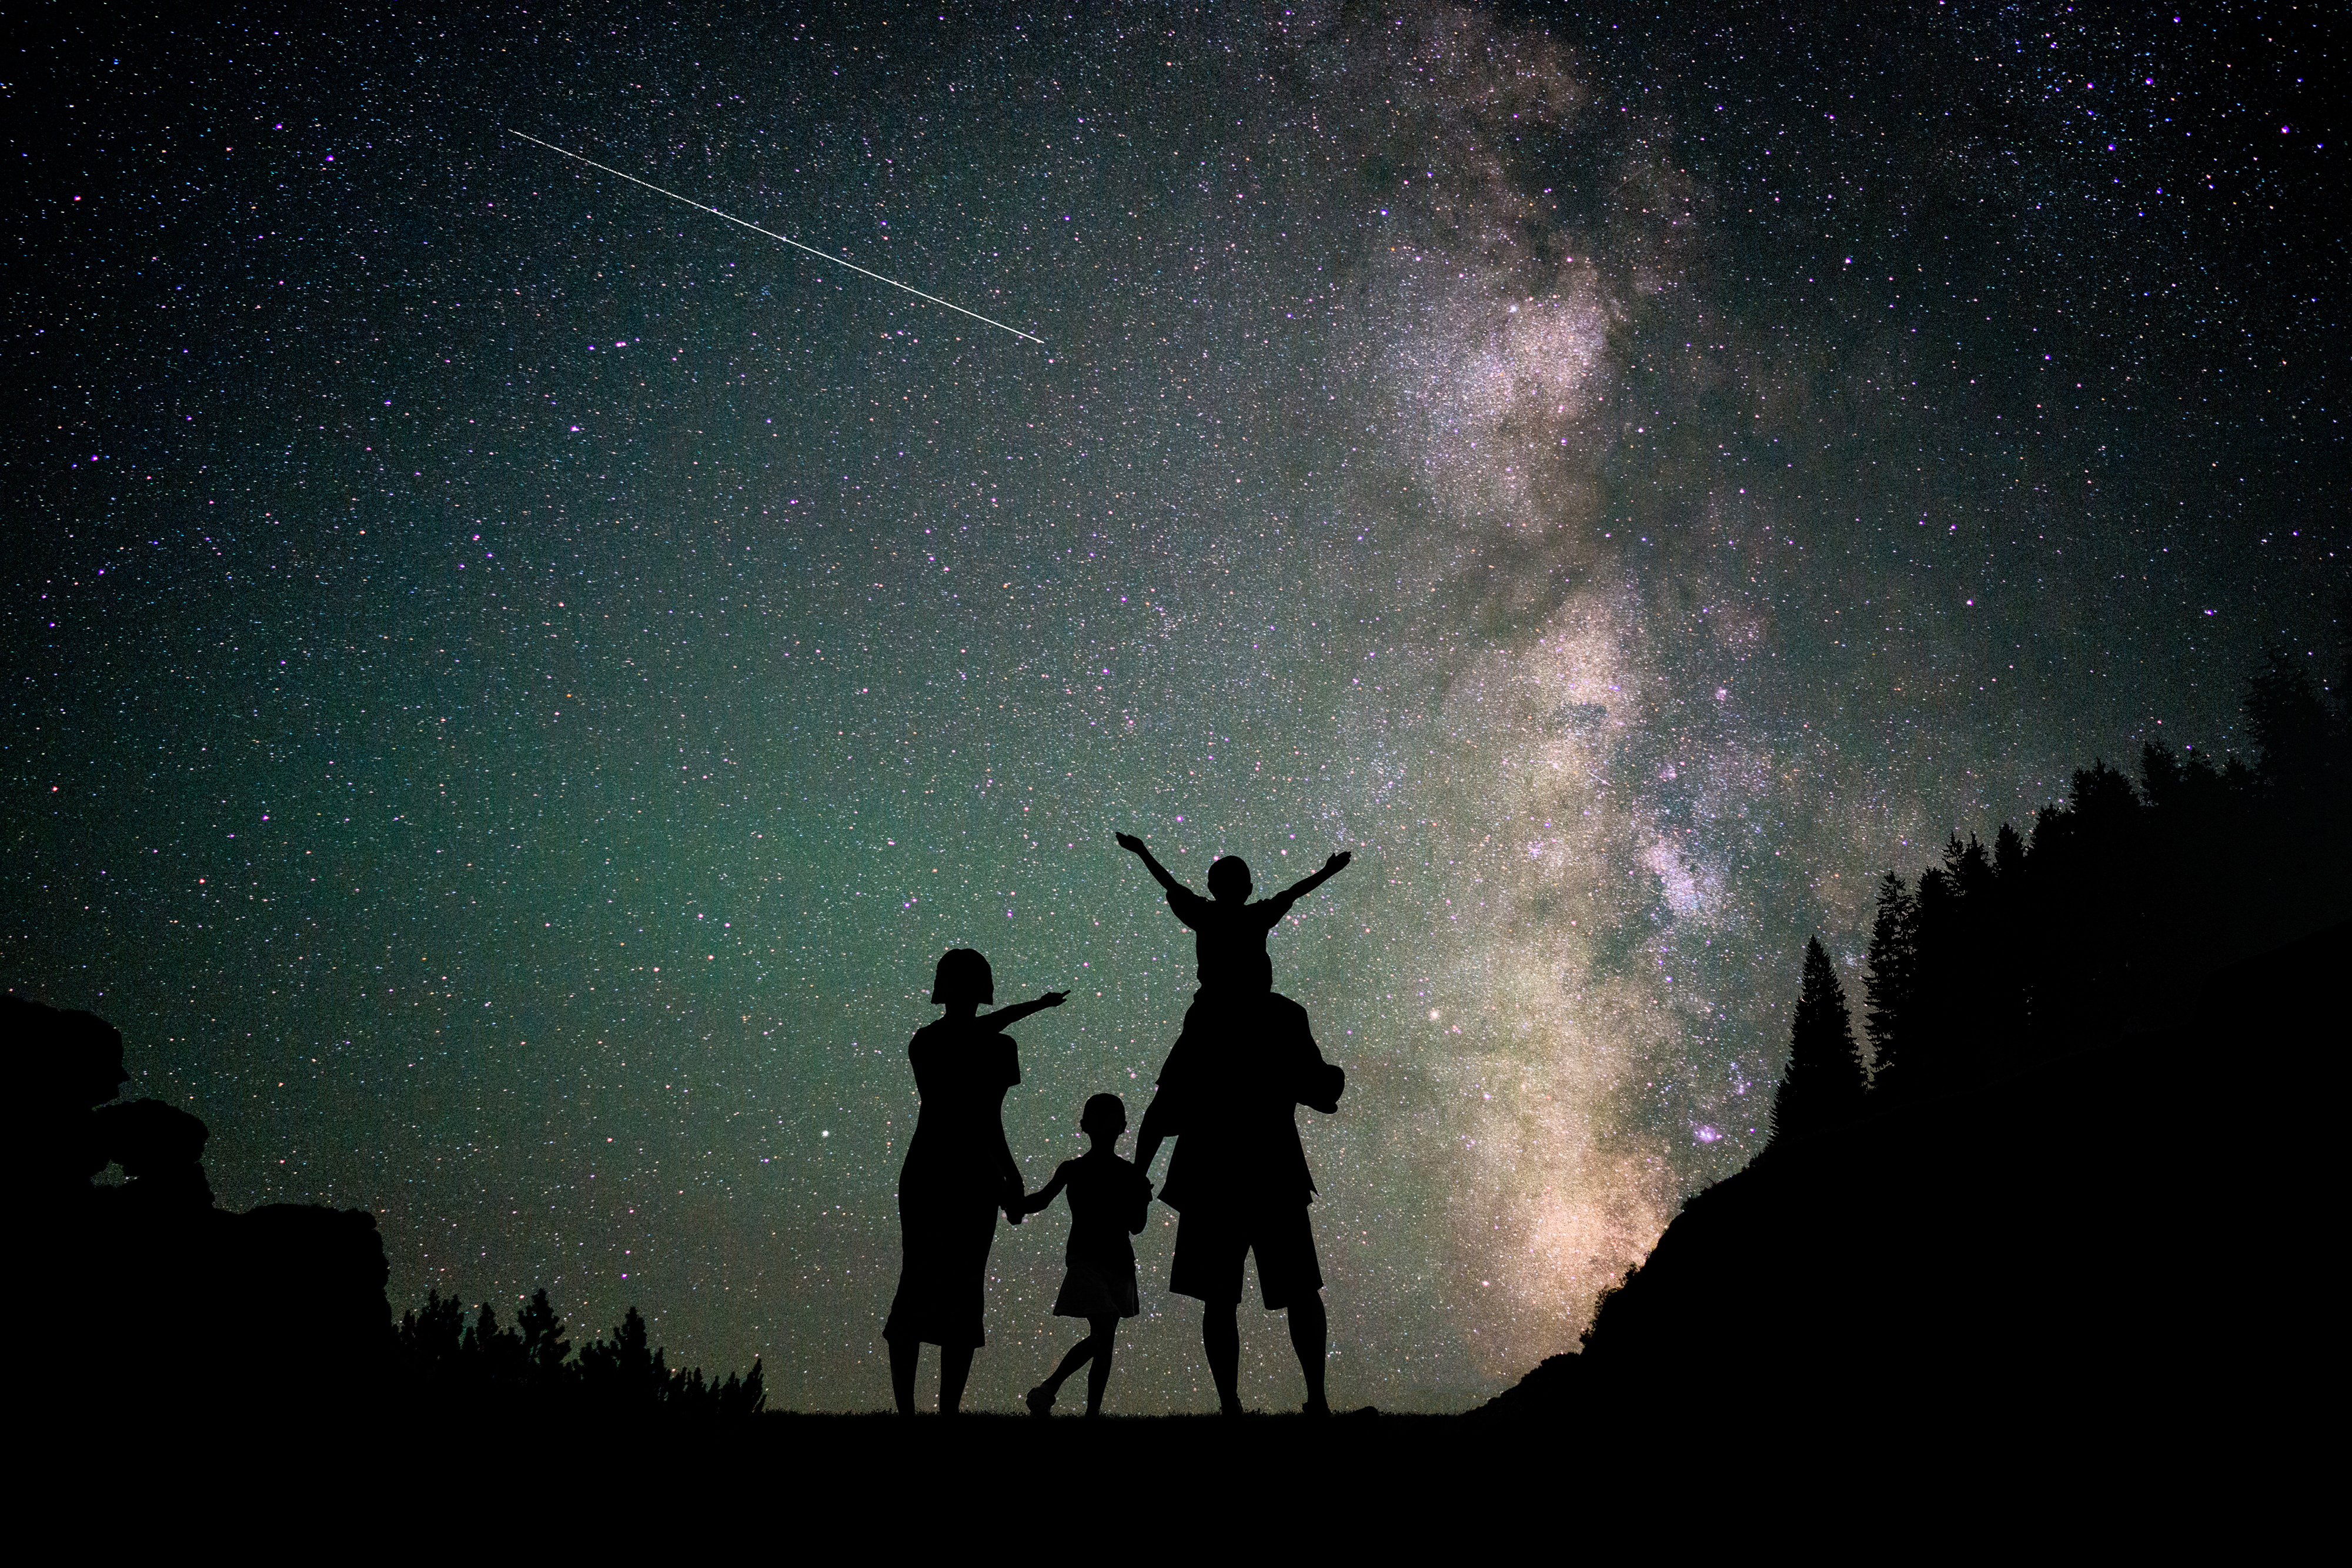 Happy family silhouette with Milky Way and beautiful night sky full of